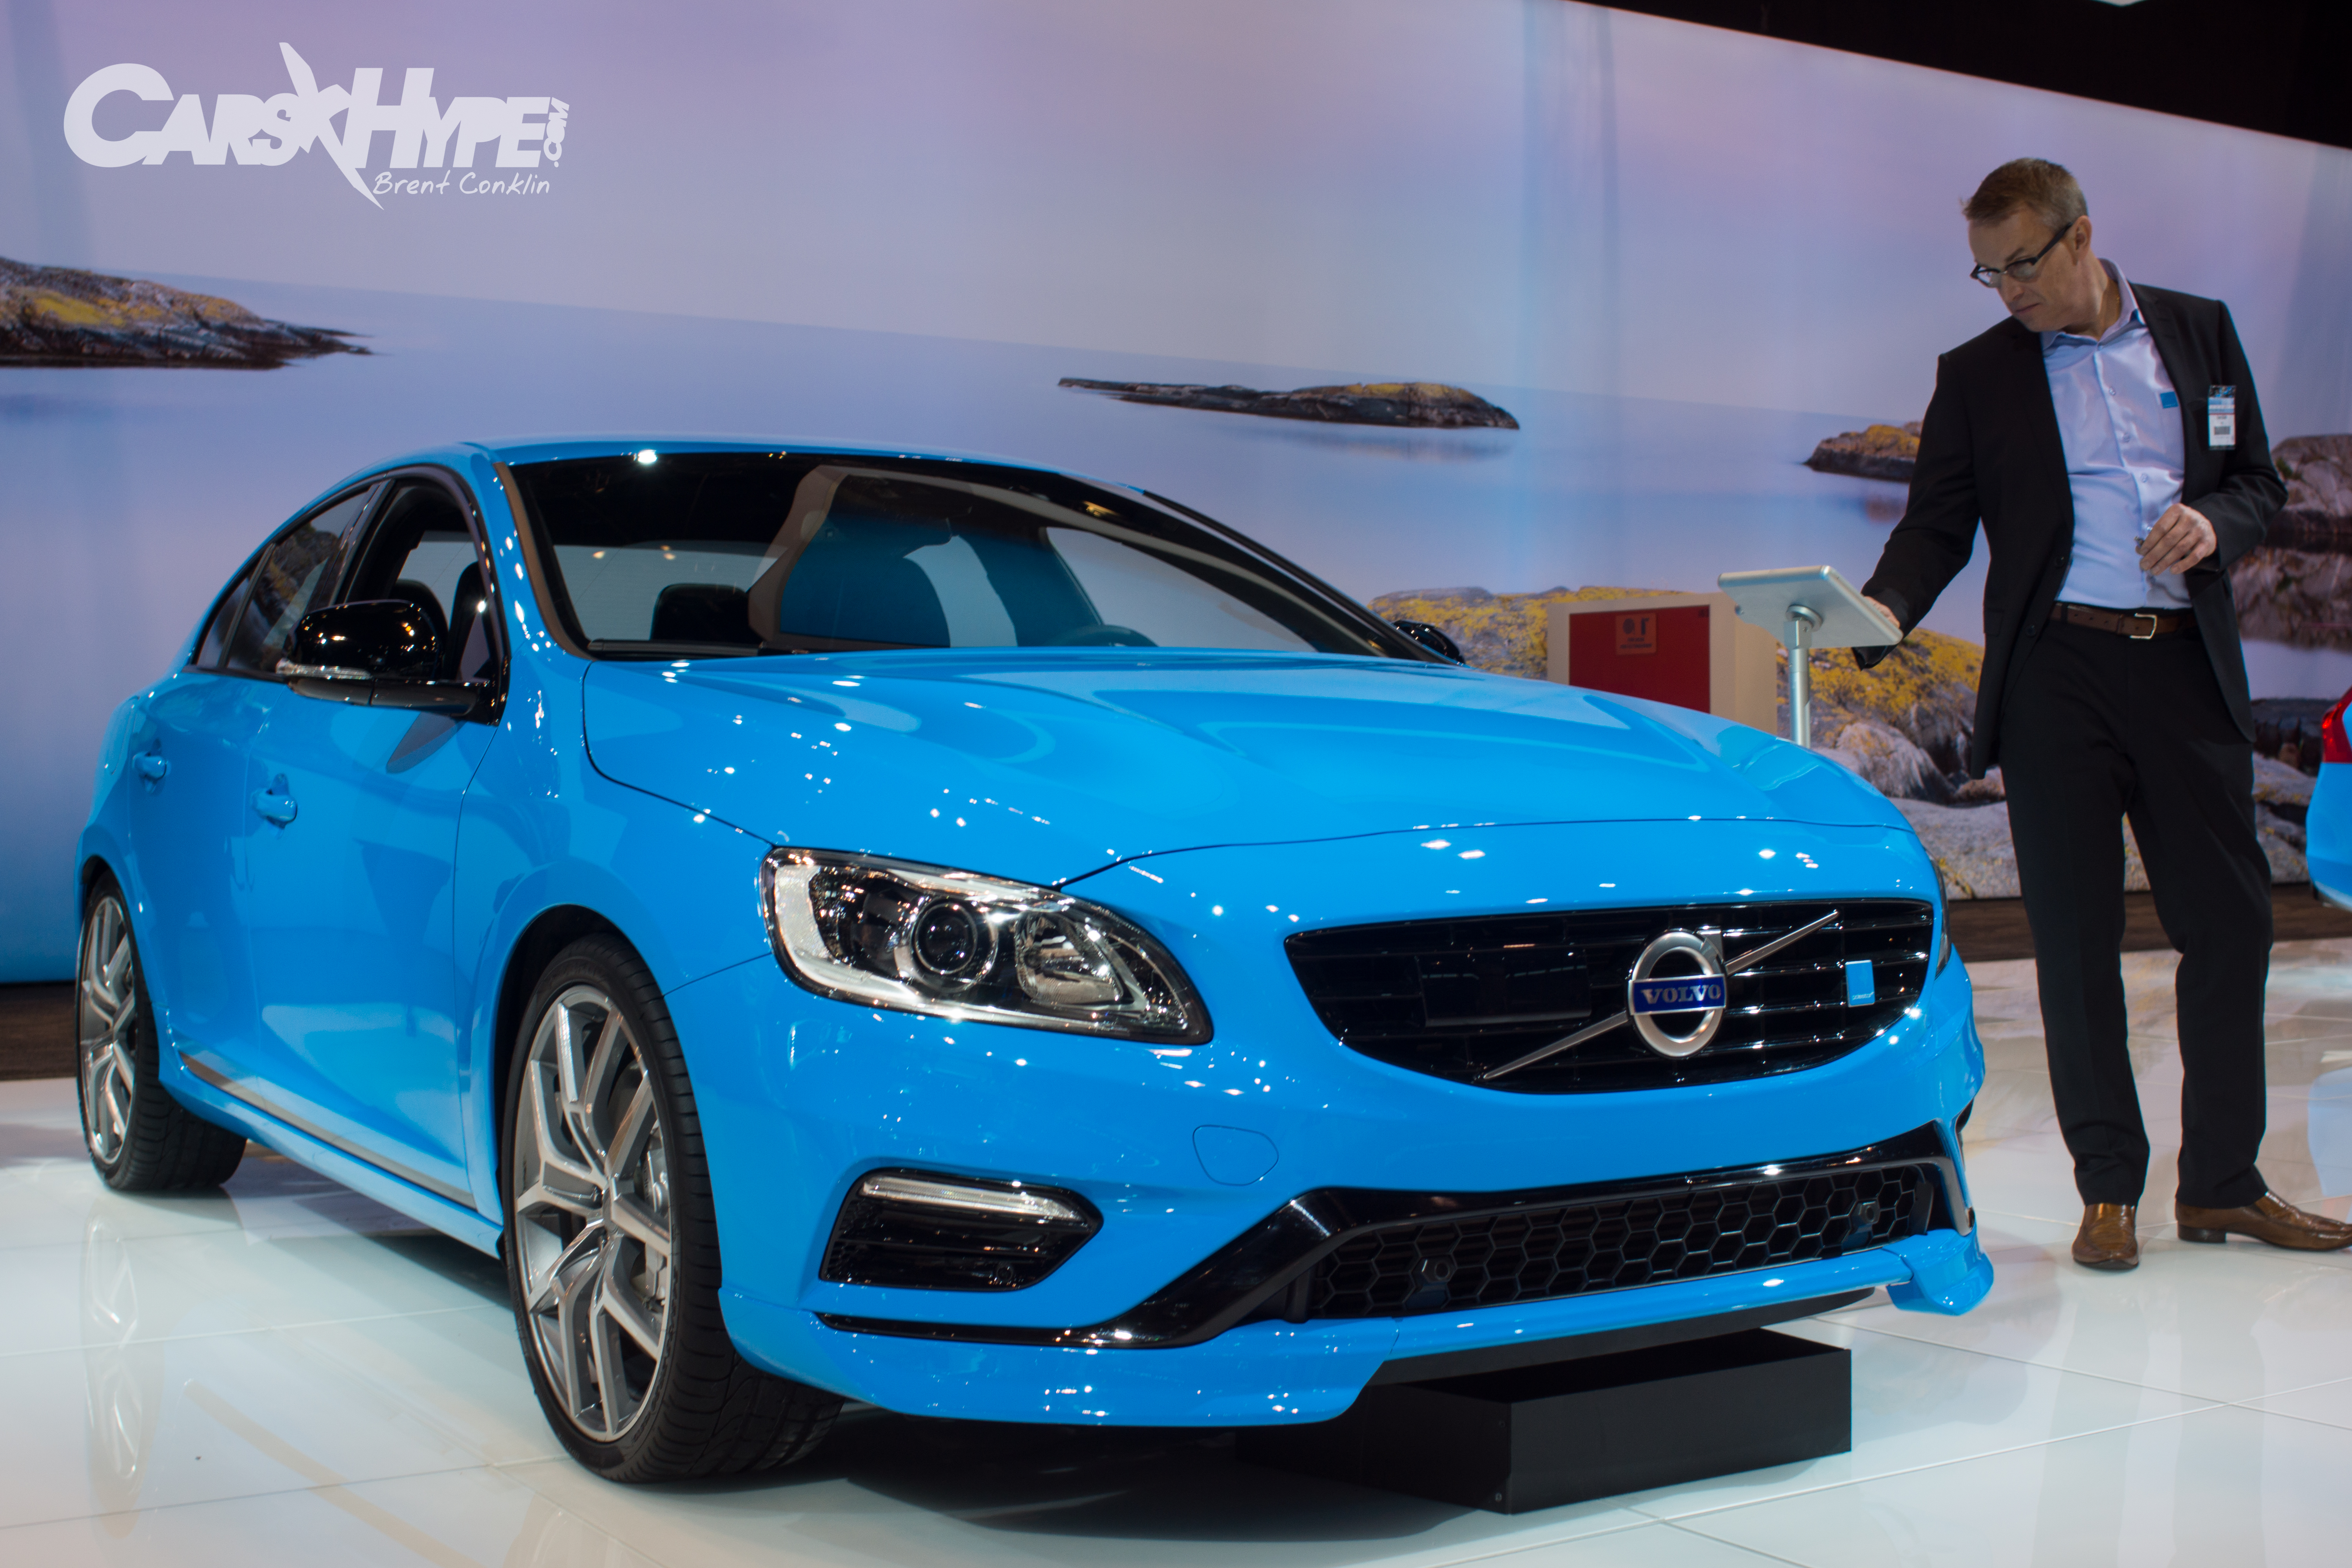 ride some package life malaysia shimano the highway volvo rhb and adventure news car paint at motoring